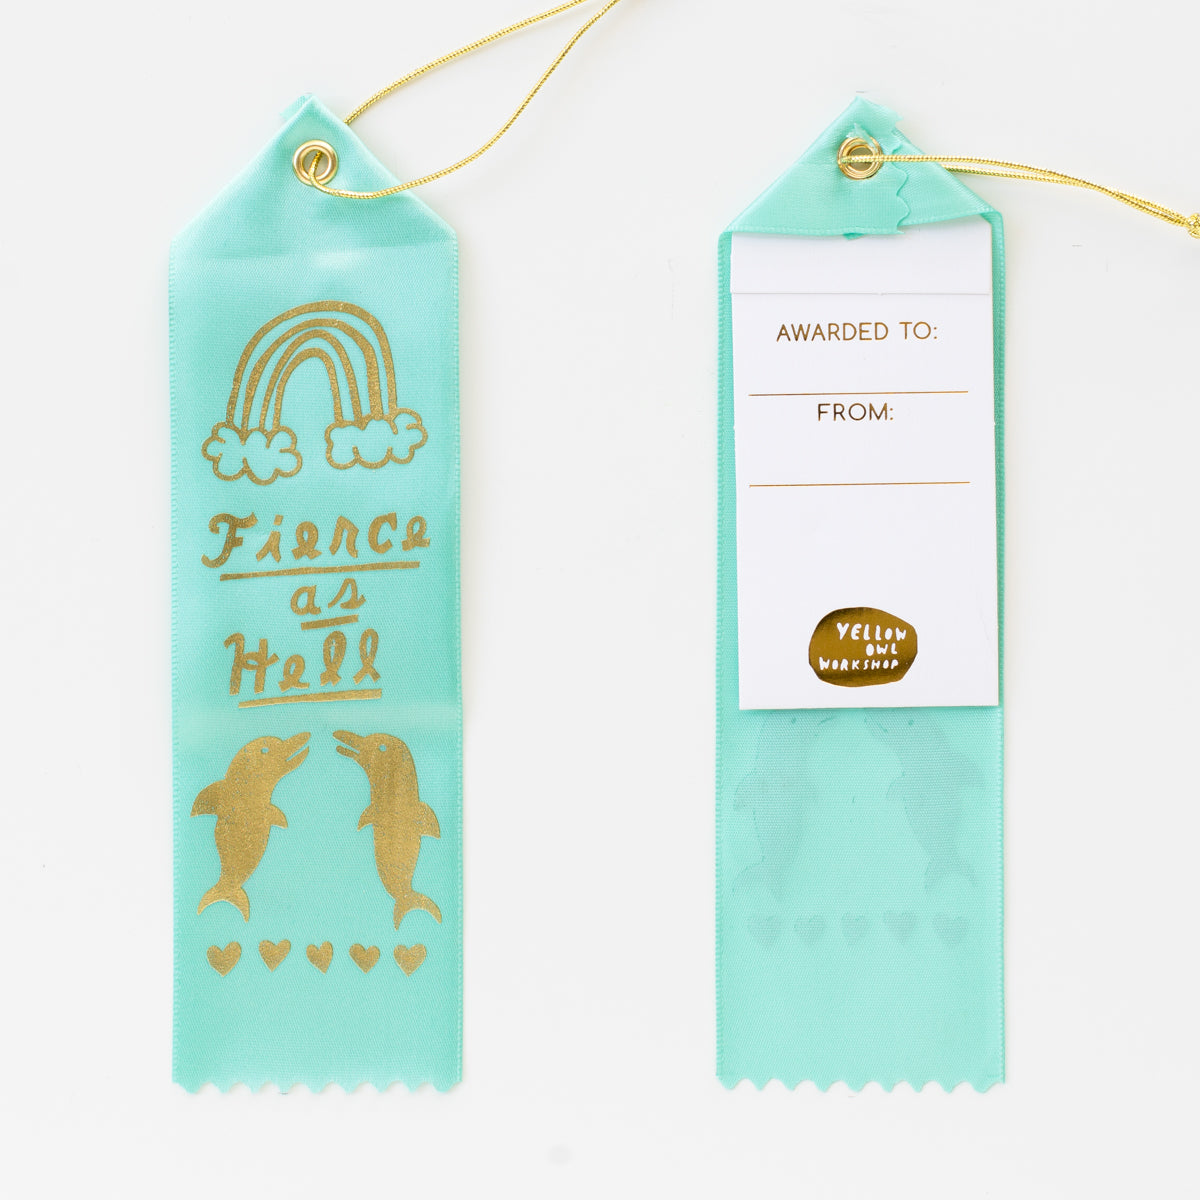 Luxe teal satin award ribbon card - fierce as hell